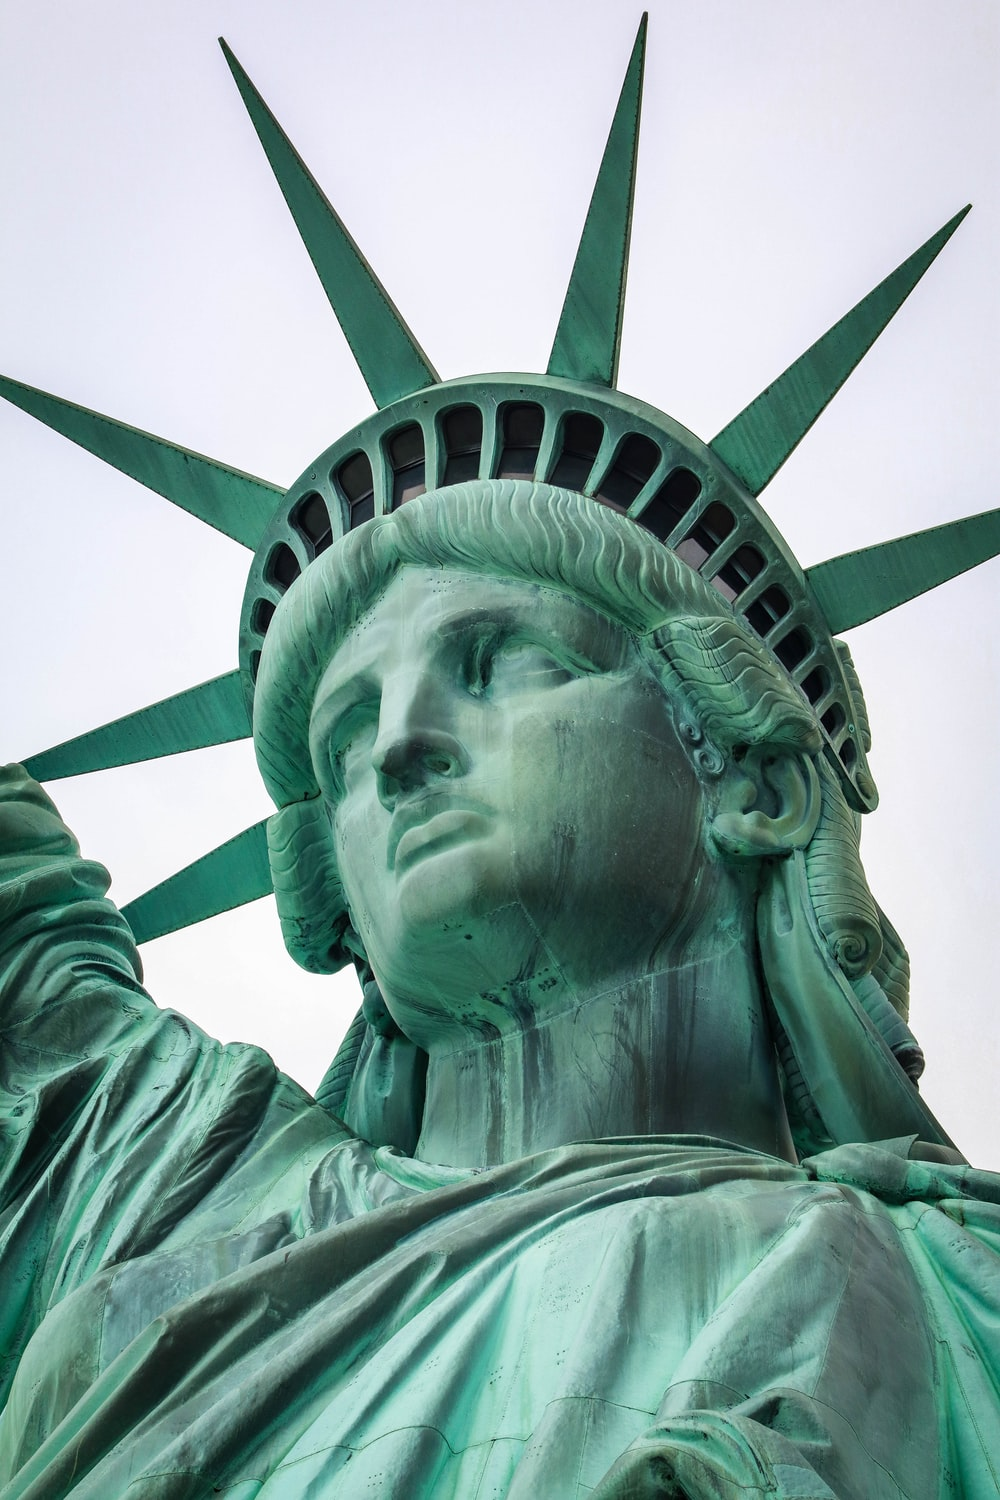 Green details on the Statue of Liberty's head and crown